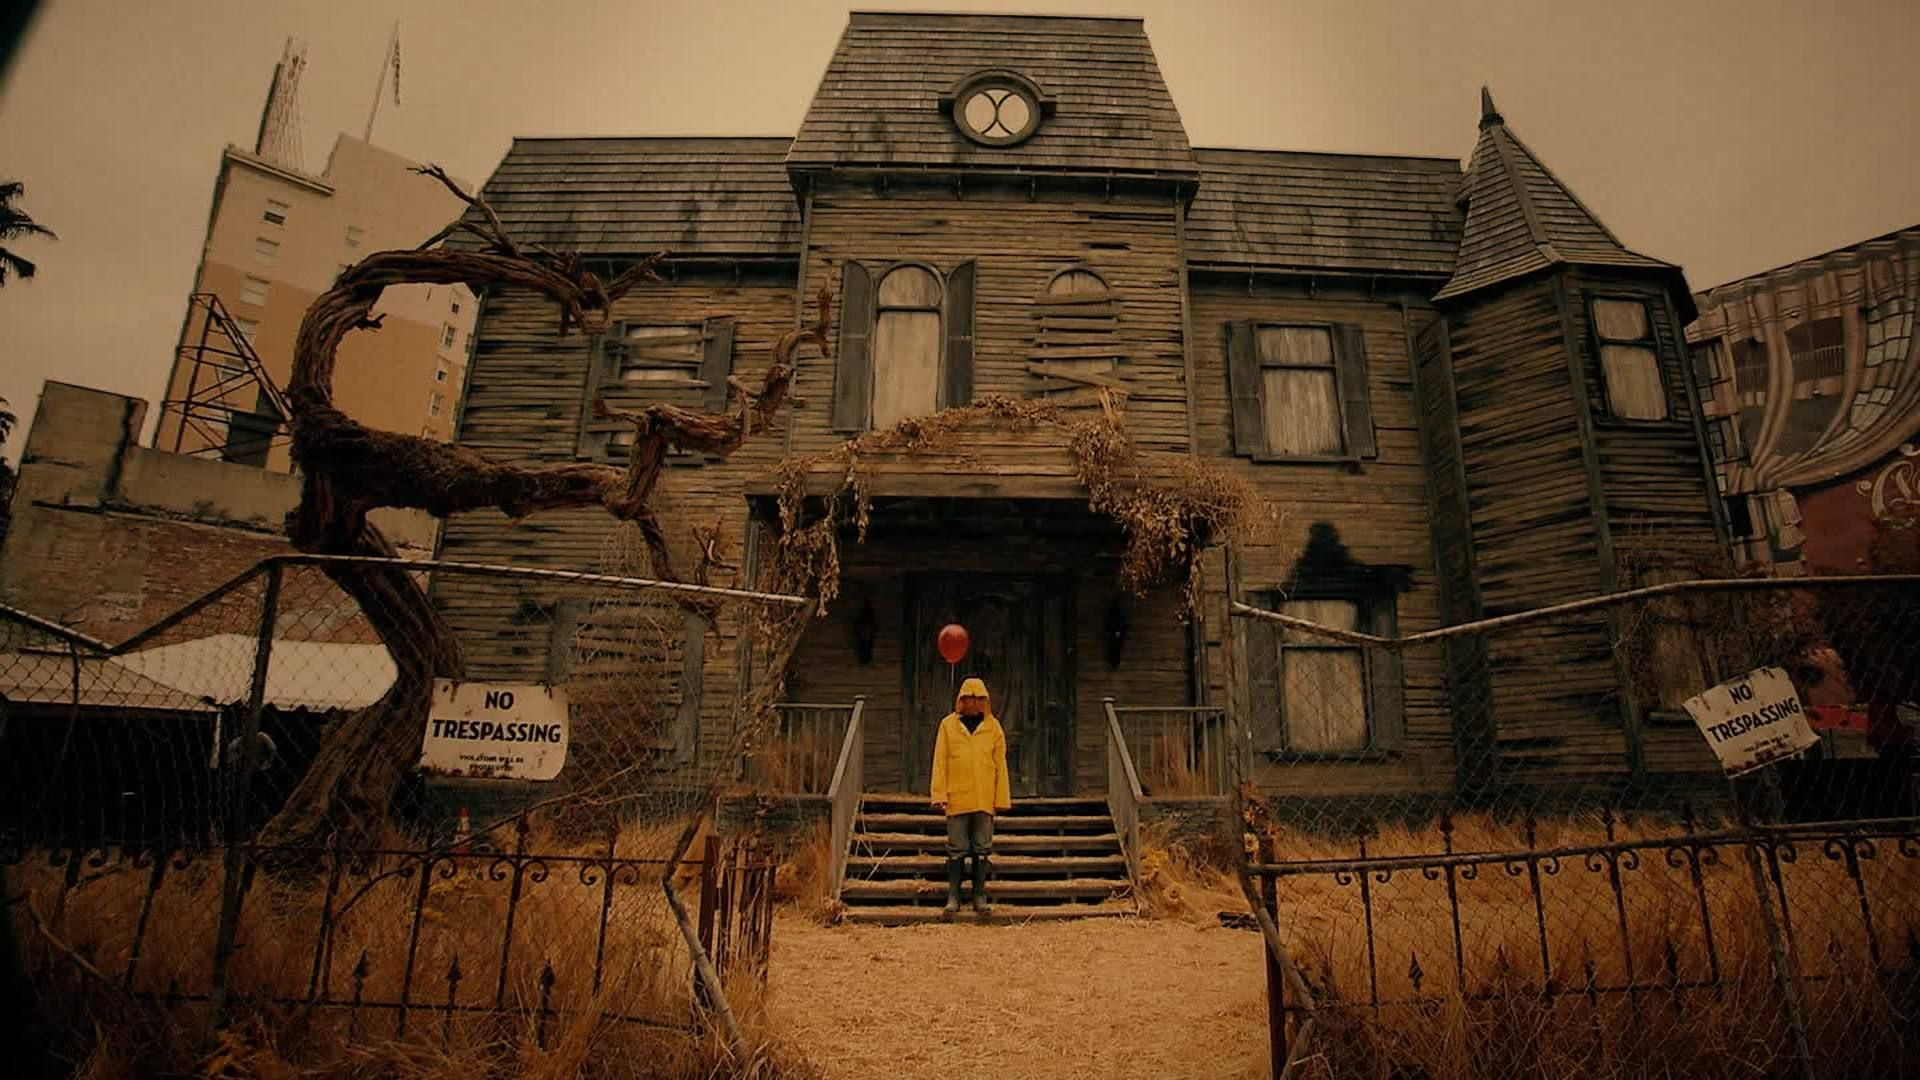 IT (2017) Scary houses, Haunted house, Halloween haunted